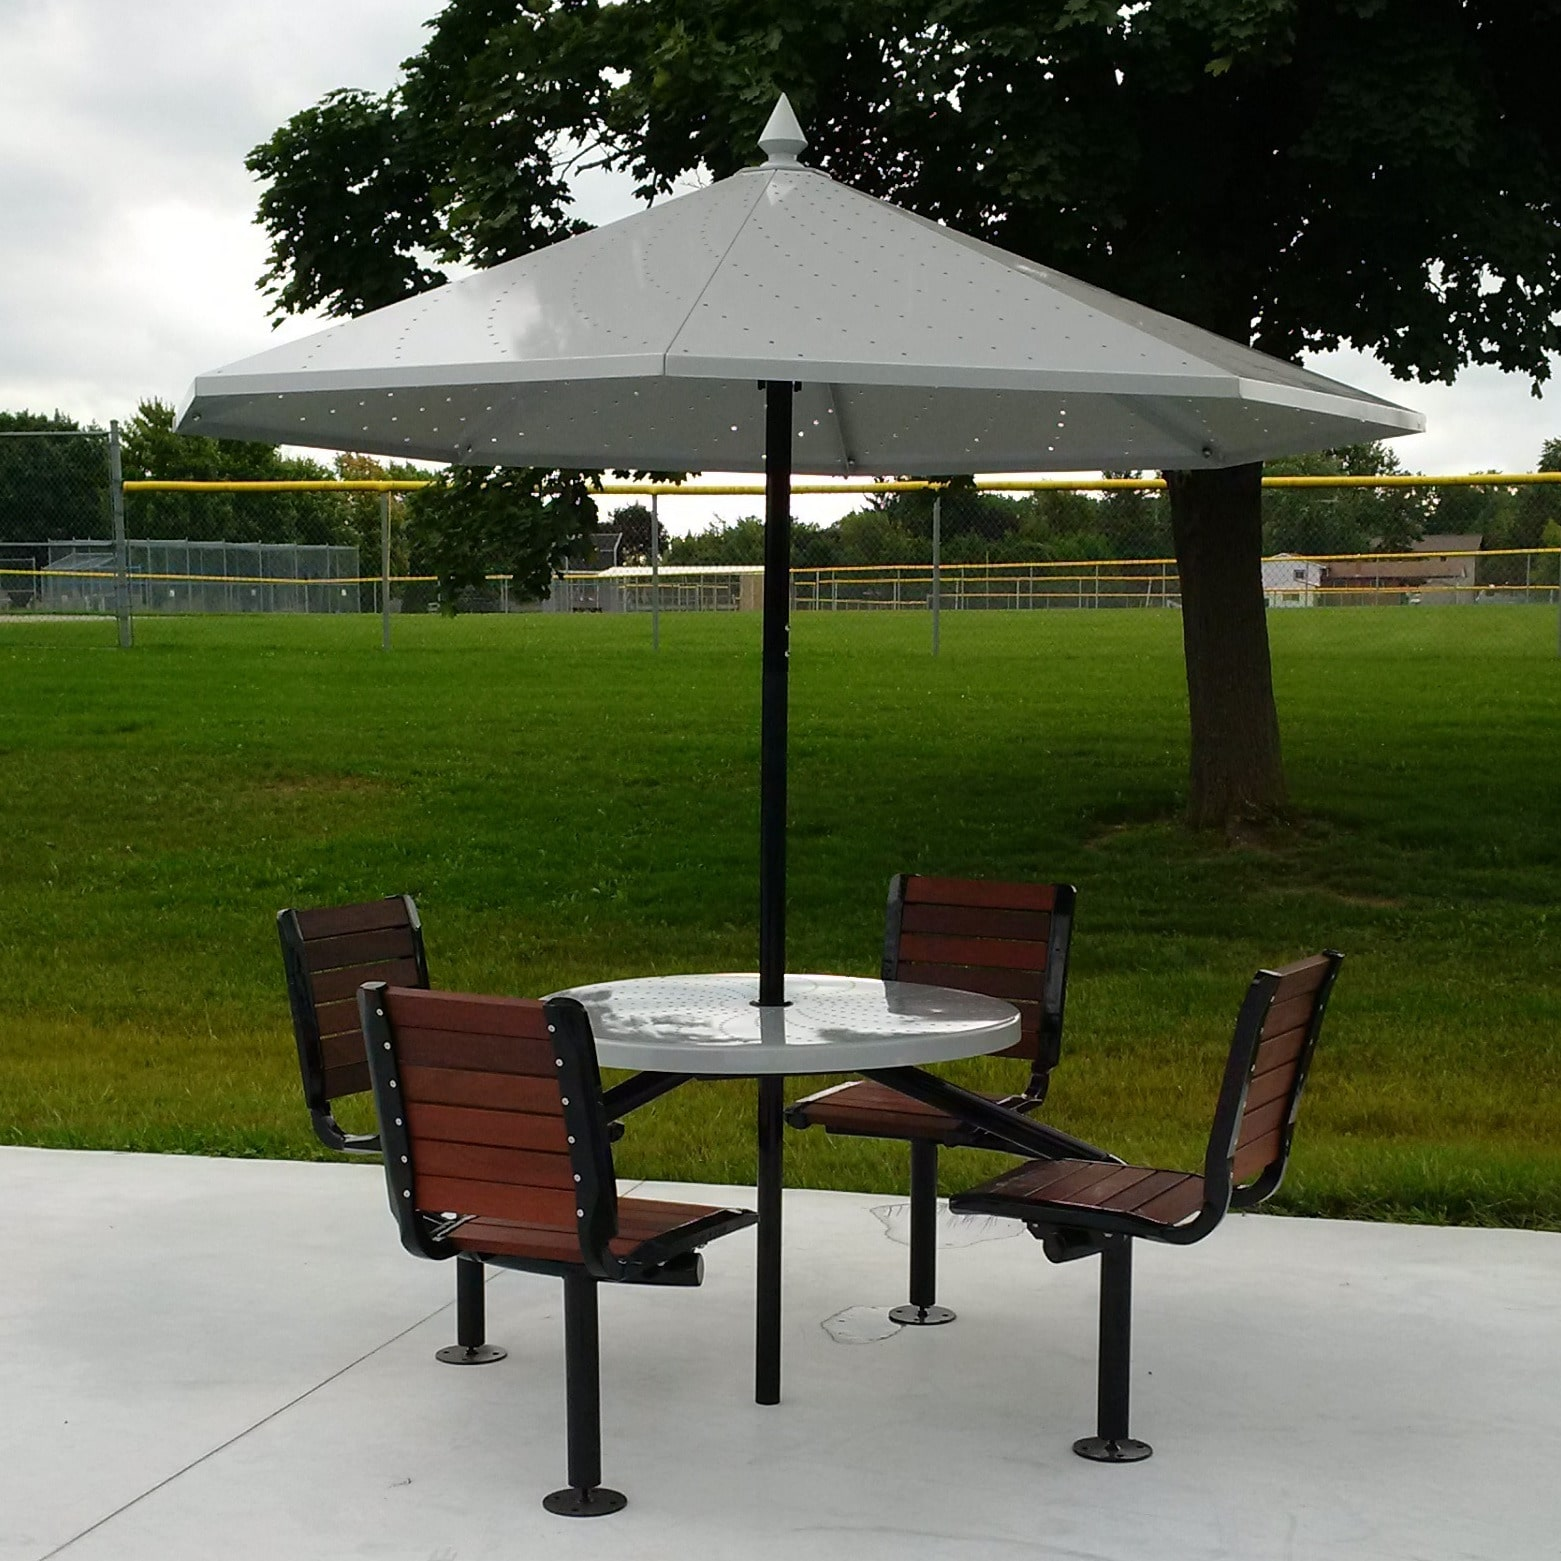 Four wooden chairs connected to an outdoor table with metal umbrella.